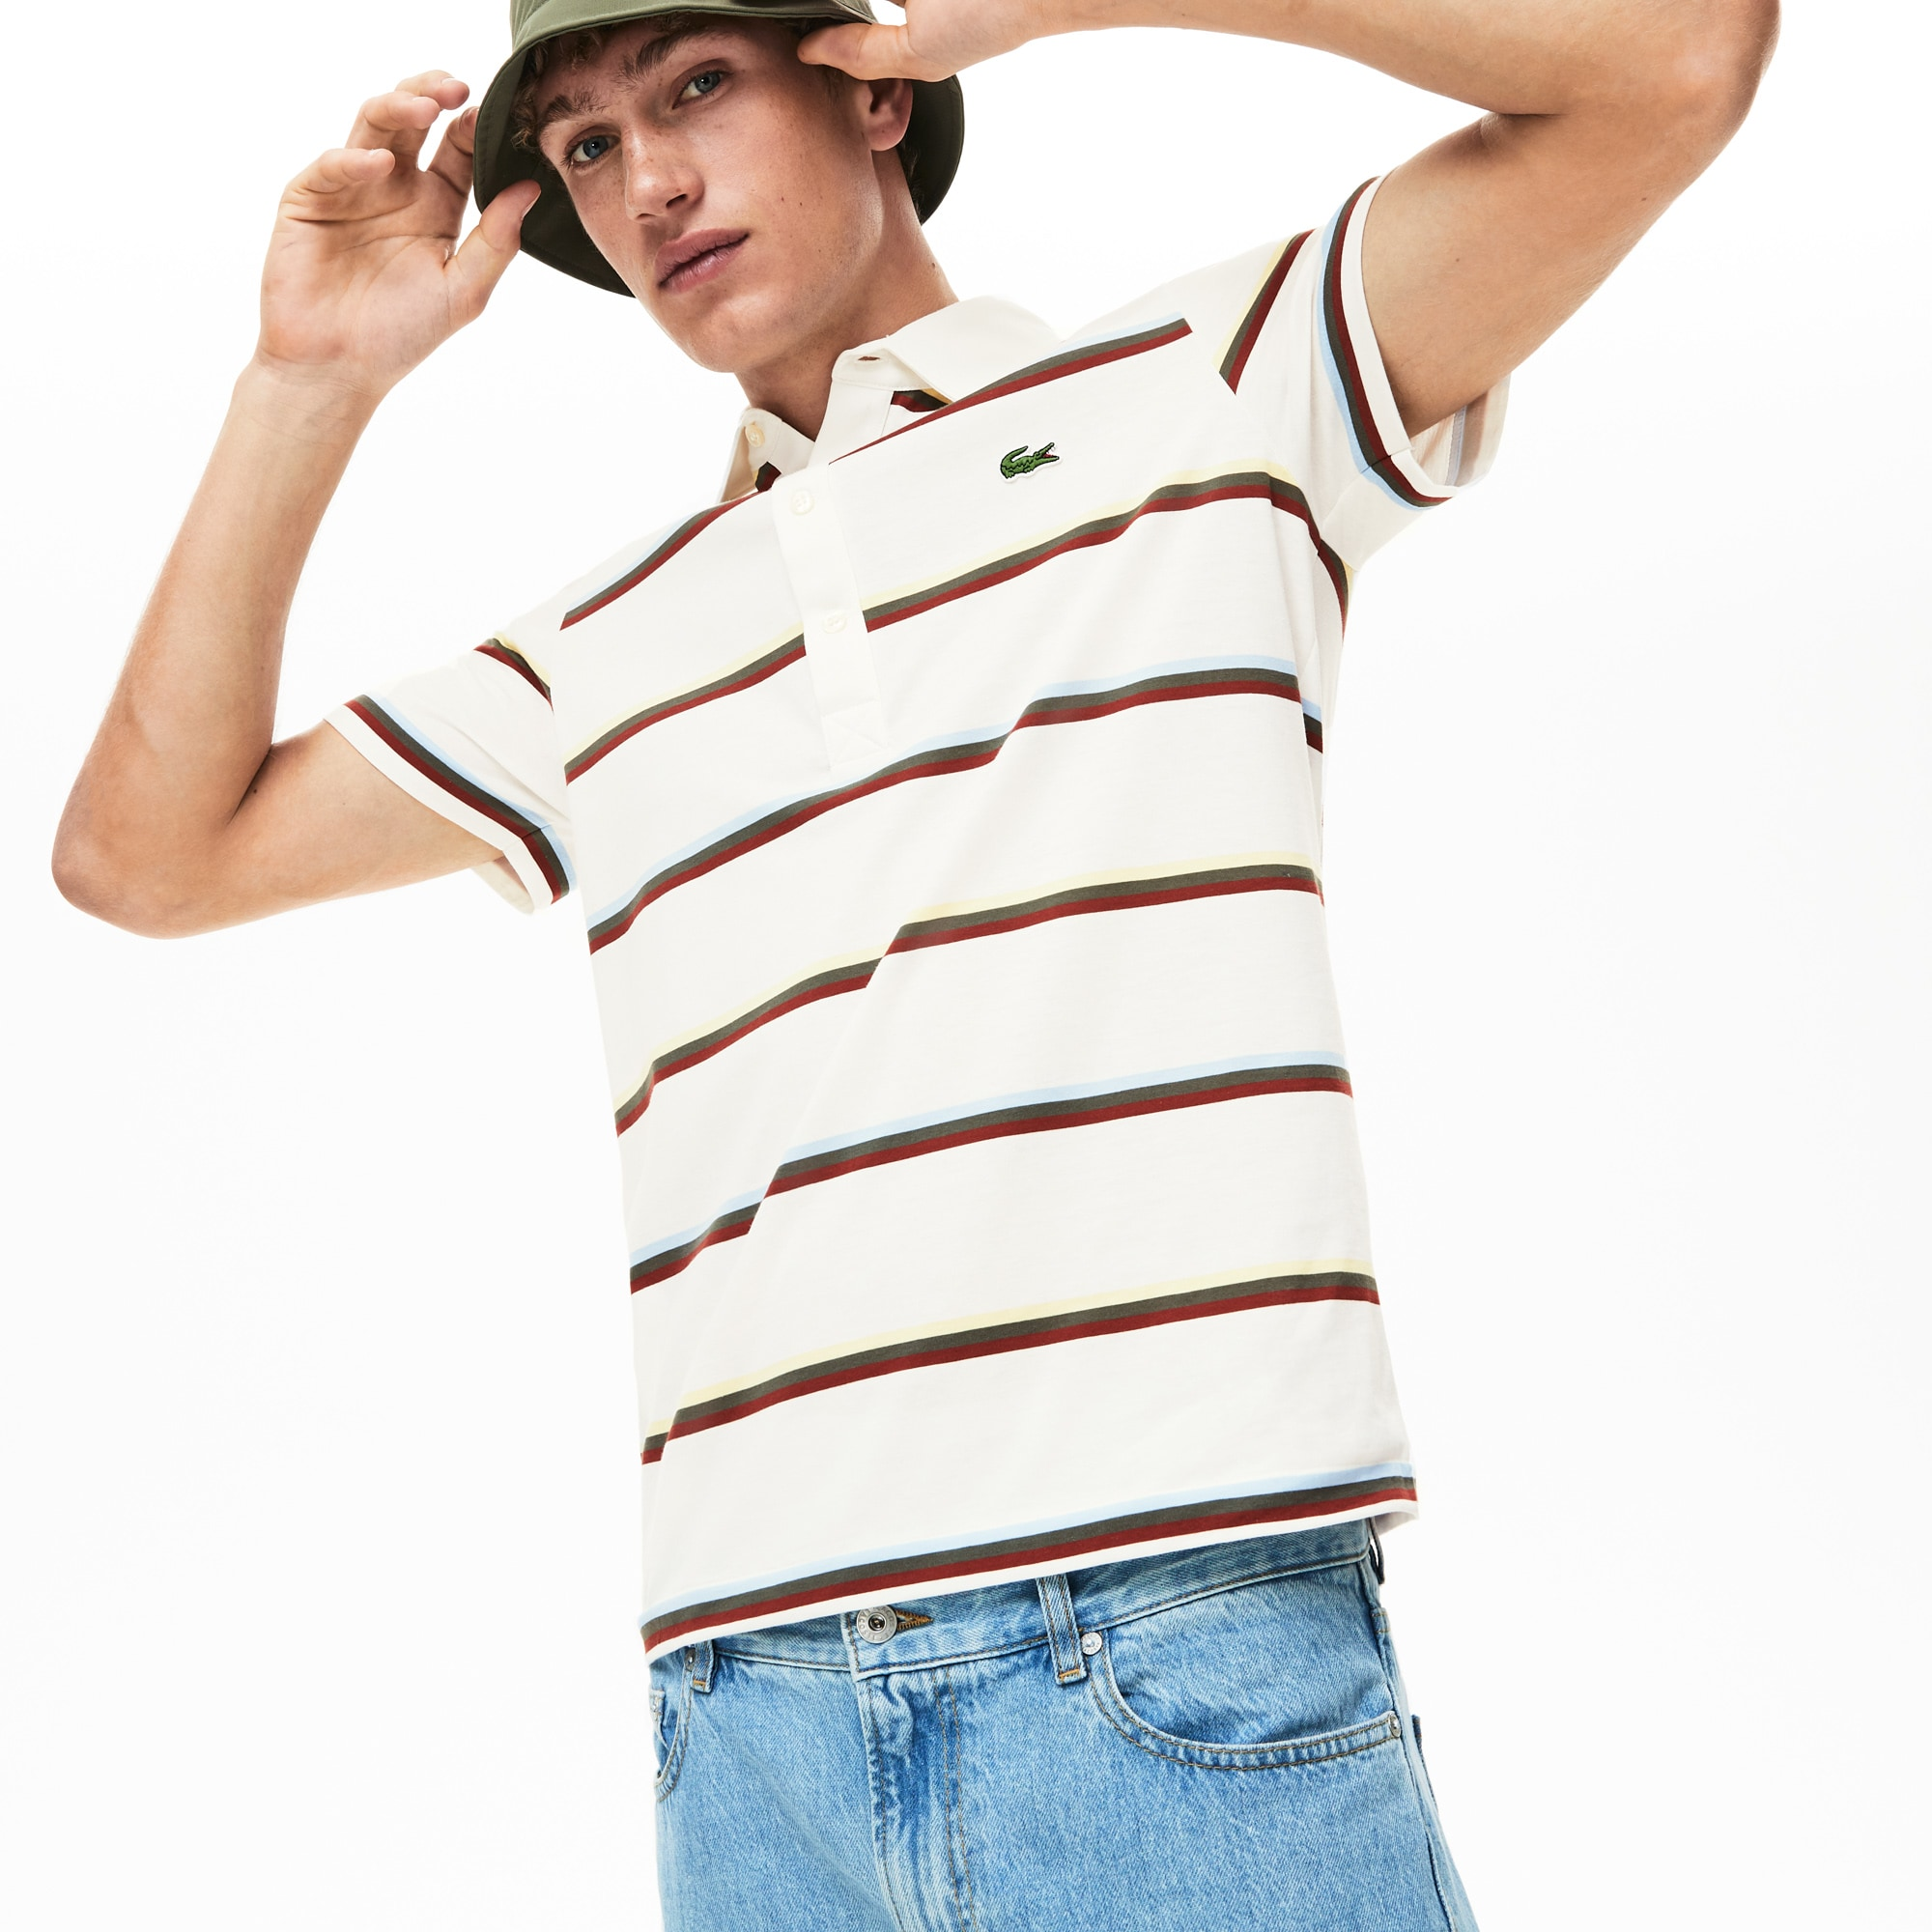 d3408f3ef Men's Polo Shirts | Lacoste Polo Shirts for Men | LACOSTE